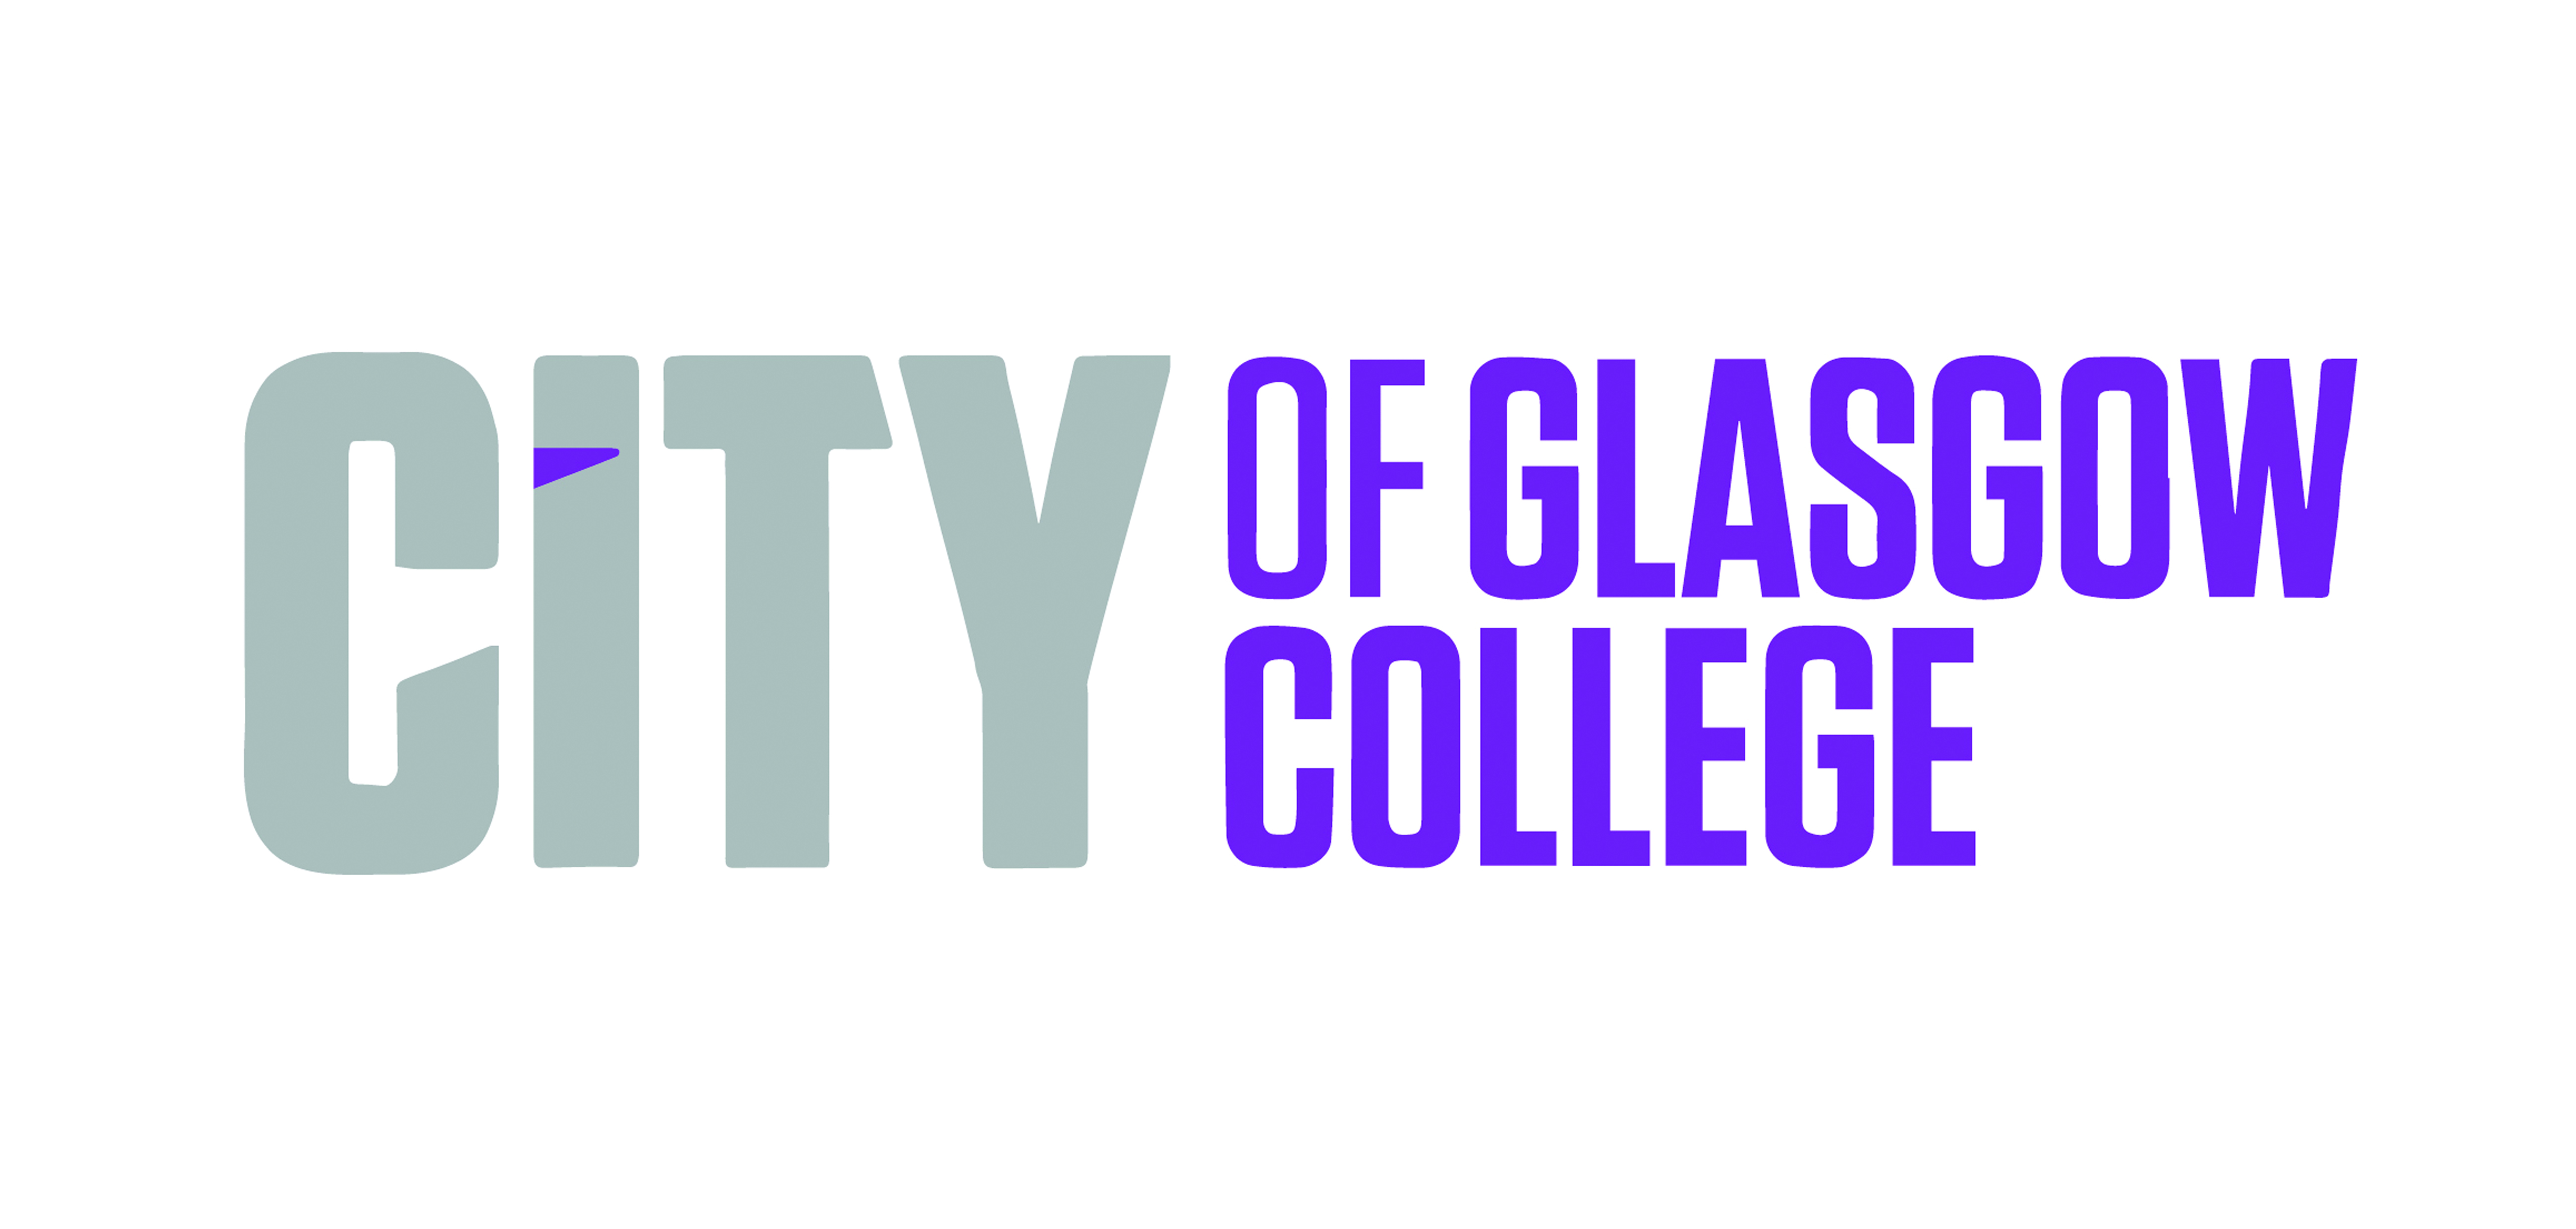 Visit City of Glasgow College website